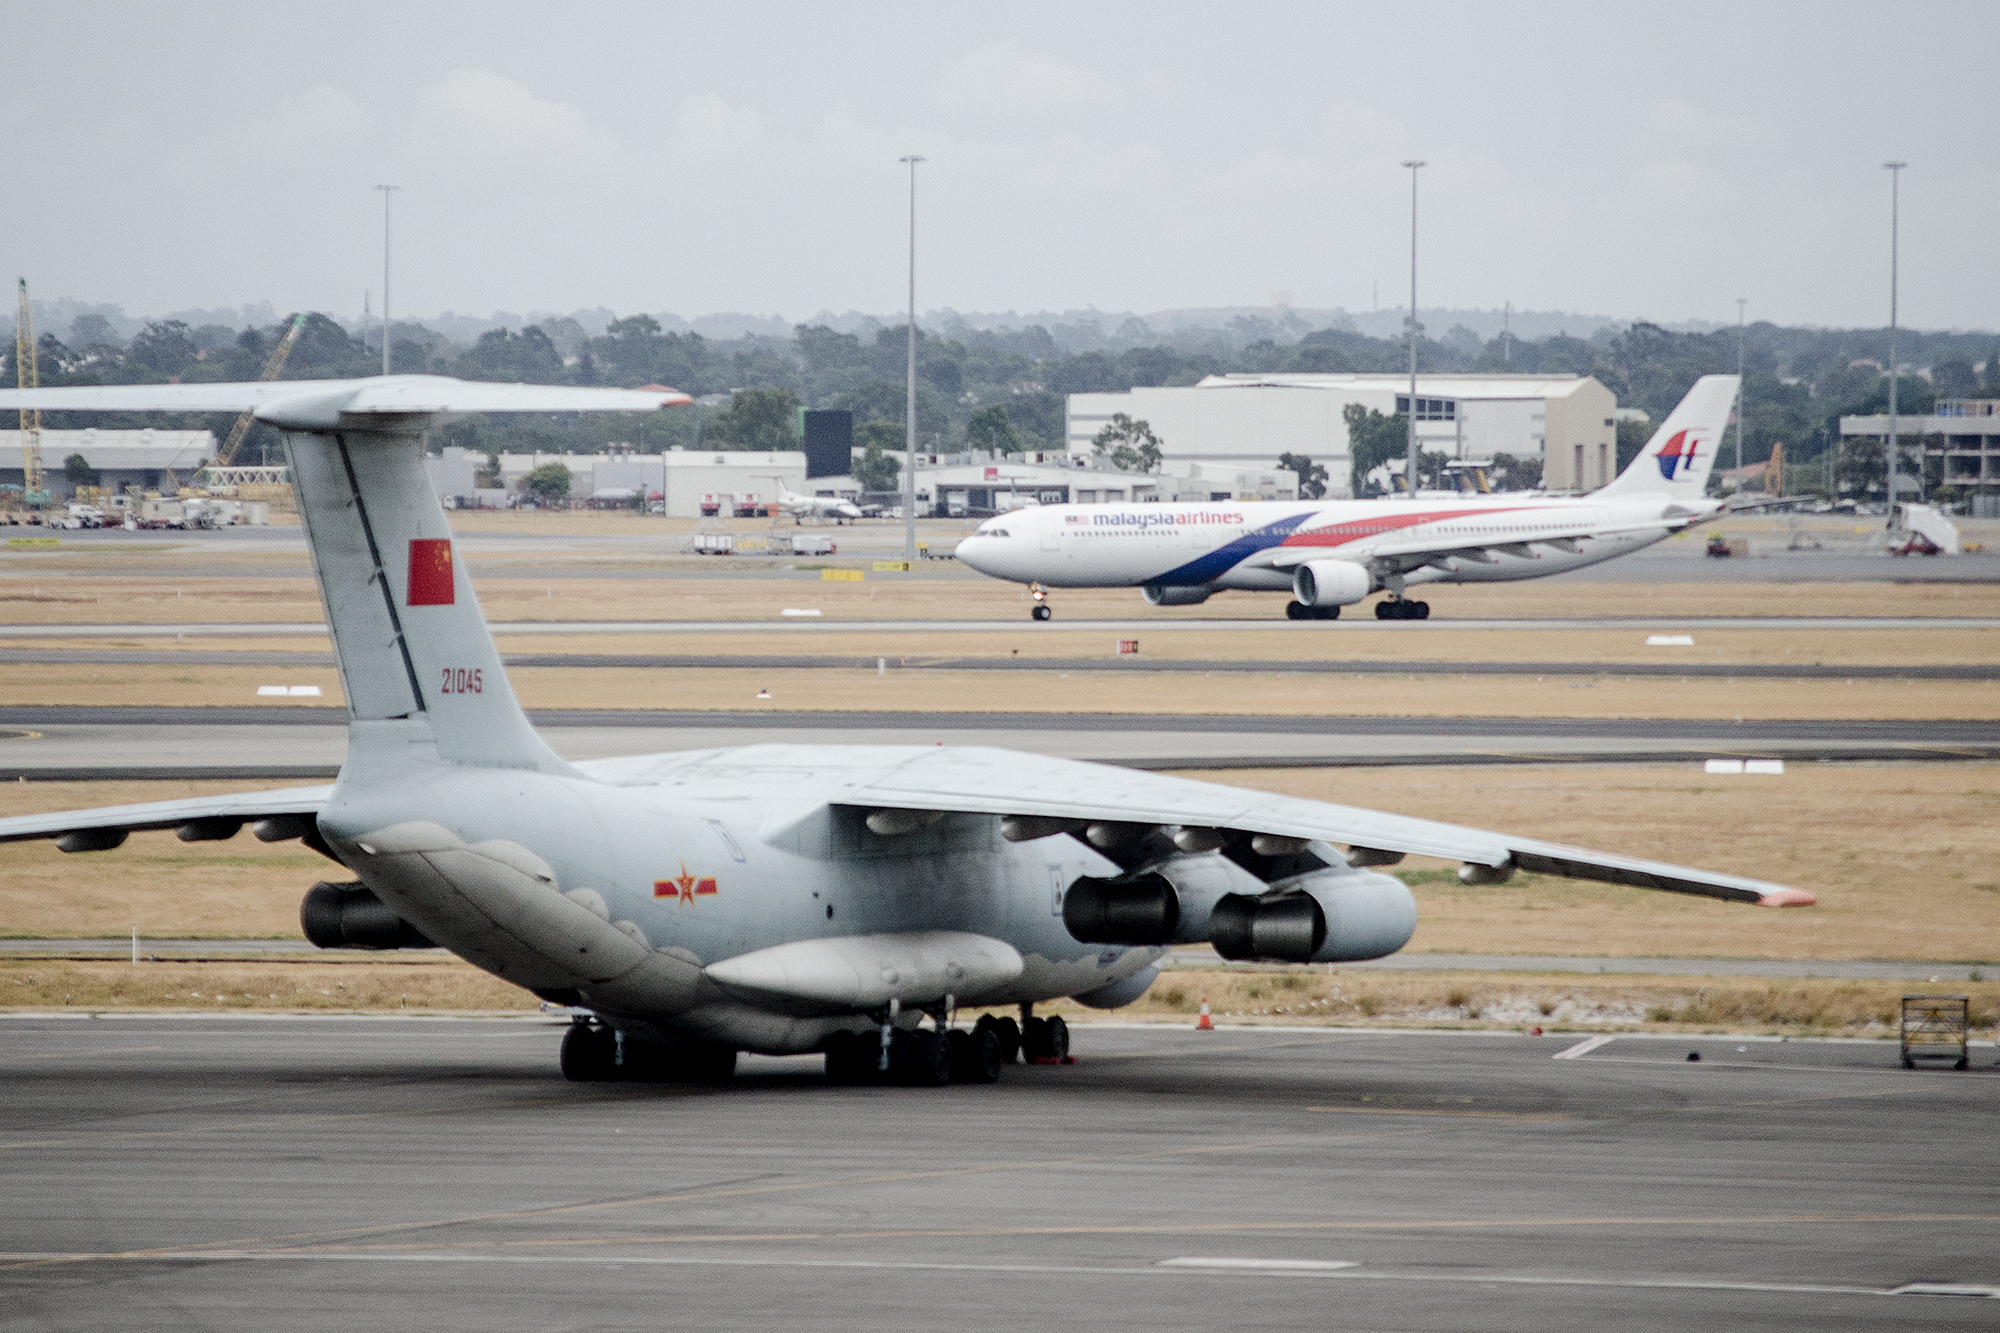 IL-76 21045 from the Chinese Military parked on the field during the initial hunt for MH370 in March 2014